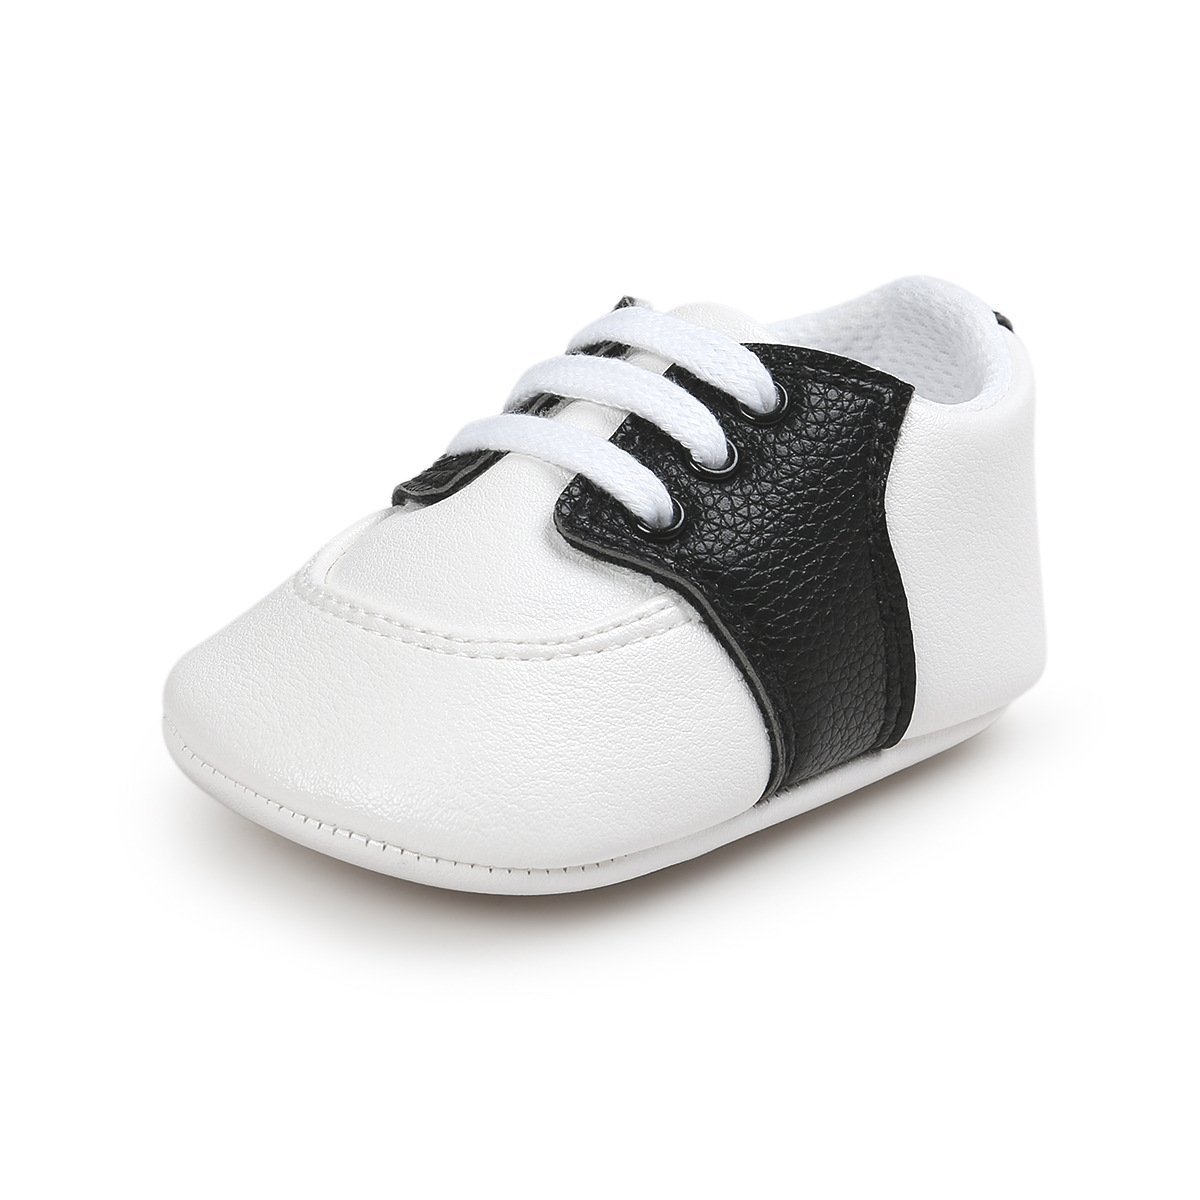 Fire Frog Baby Saddle Shoes for Boys Girl Infant Lace-up Sneakers Black 0-6 Months